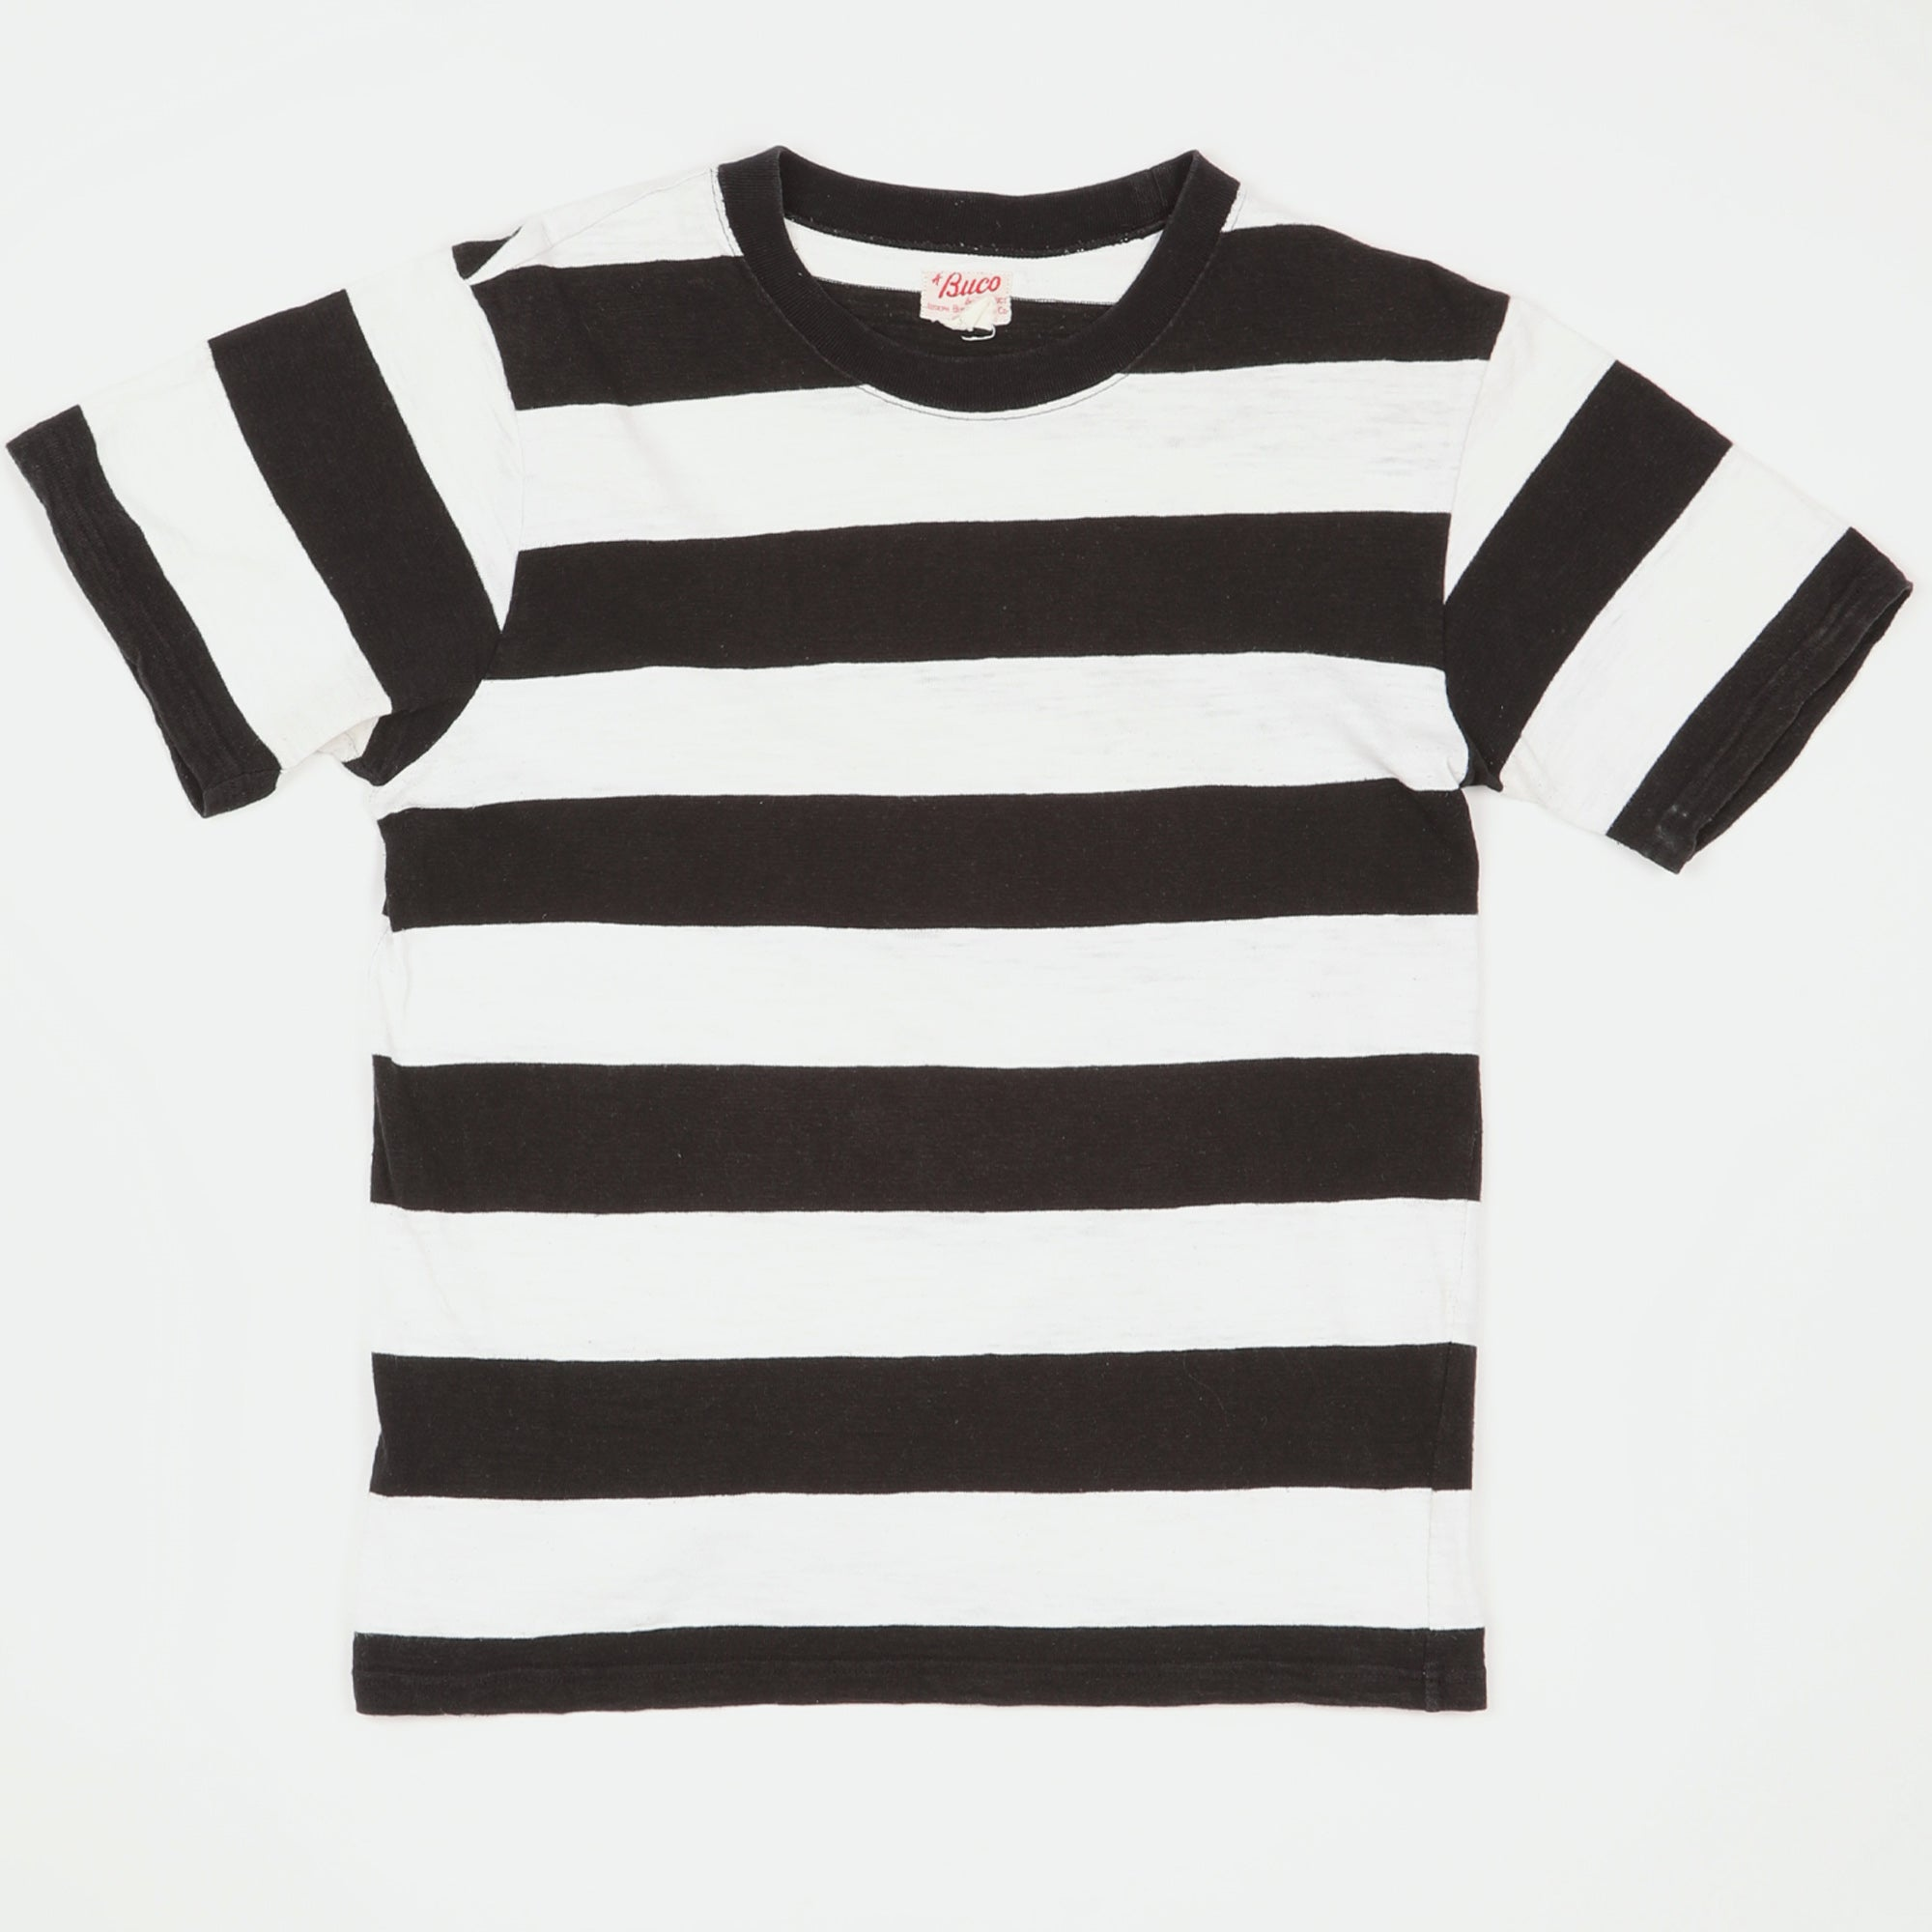 Buco Striped Tee